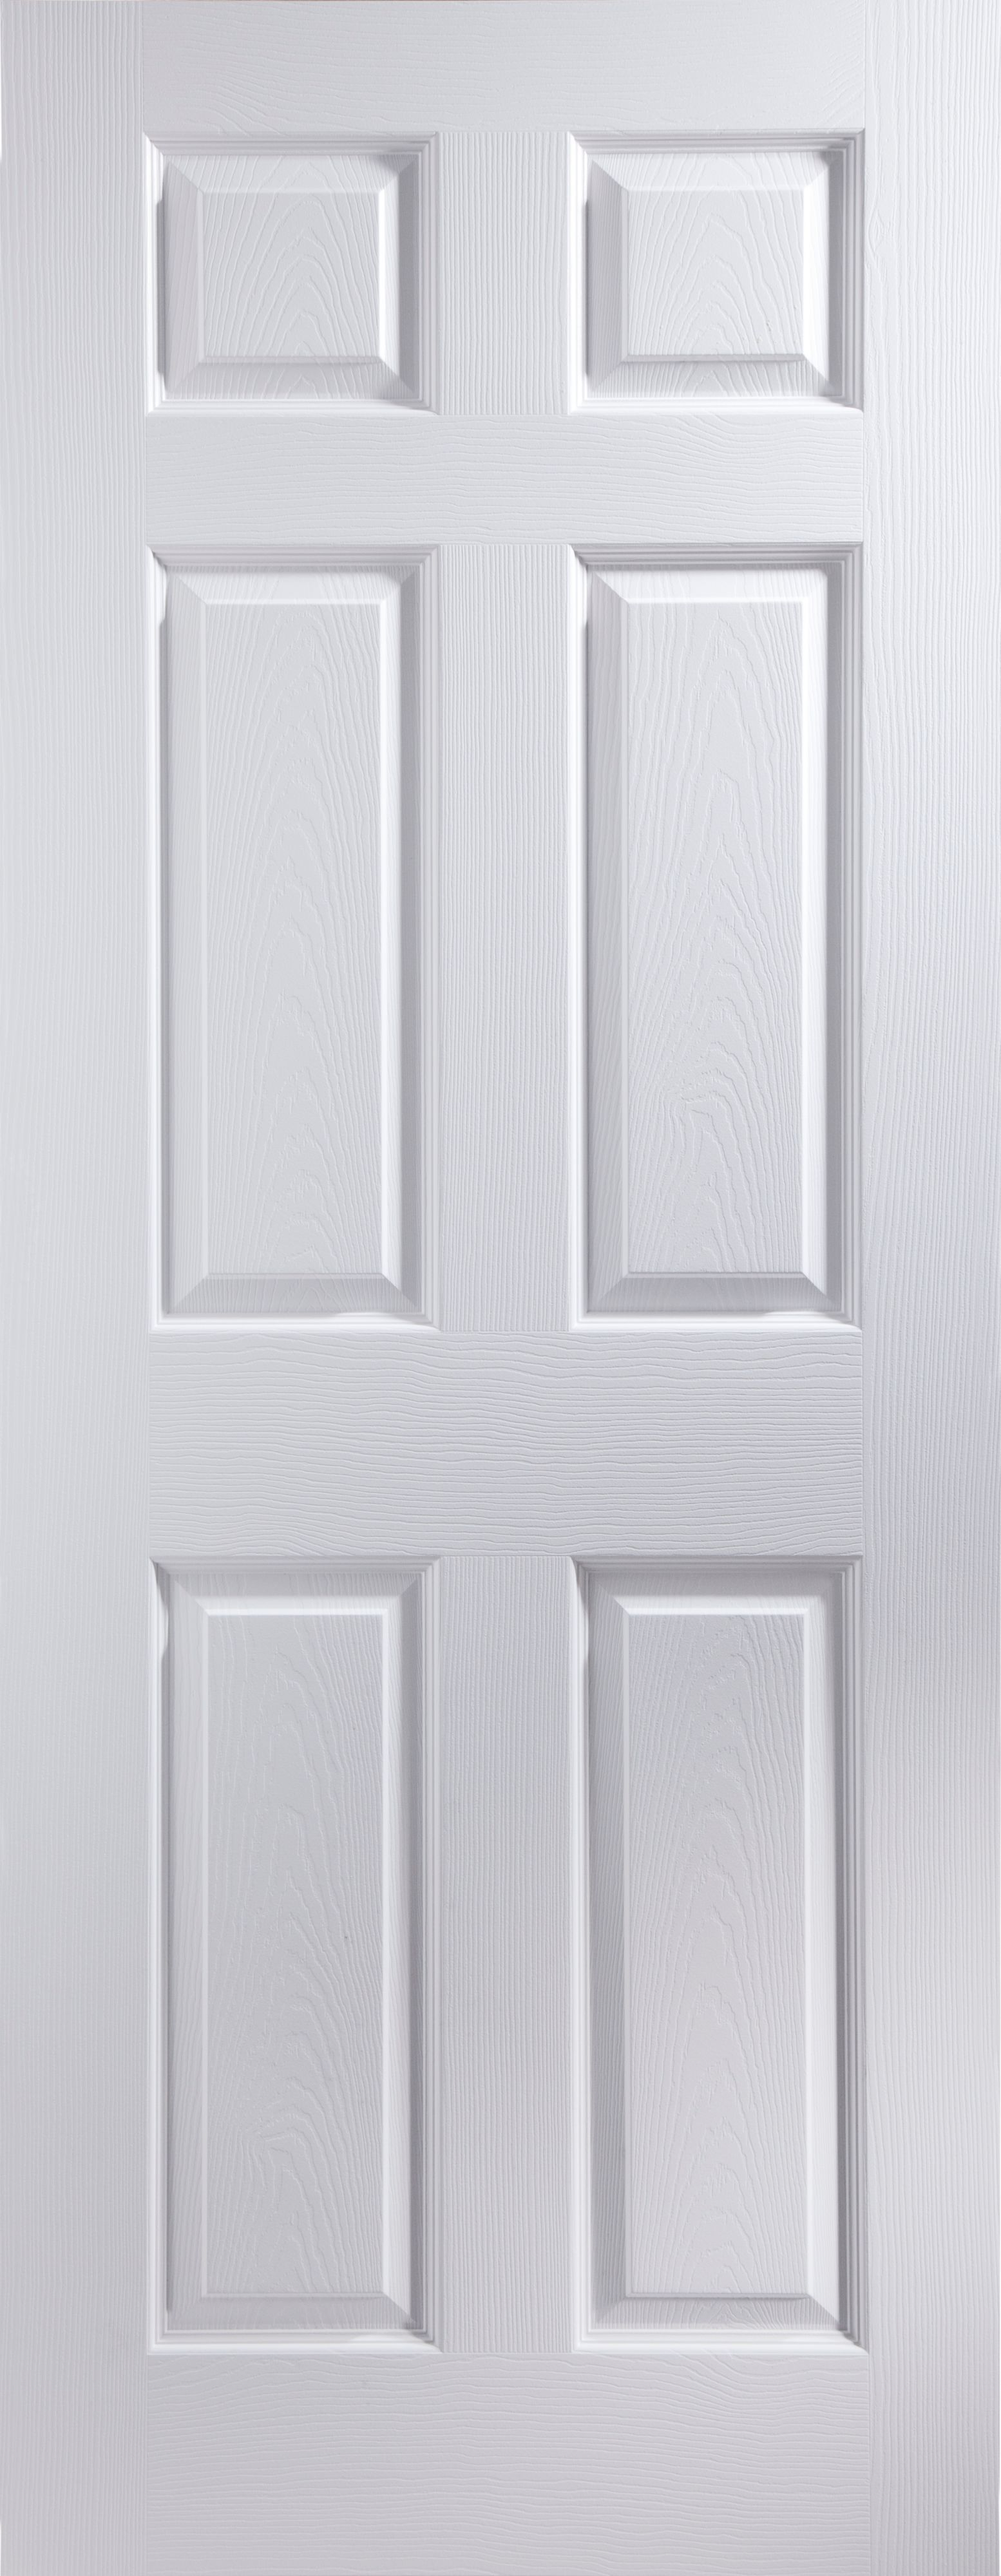 Panel Primed Woodgrain Effect Internal Door (H)1981mm (W)762mm  #5F5F6C